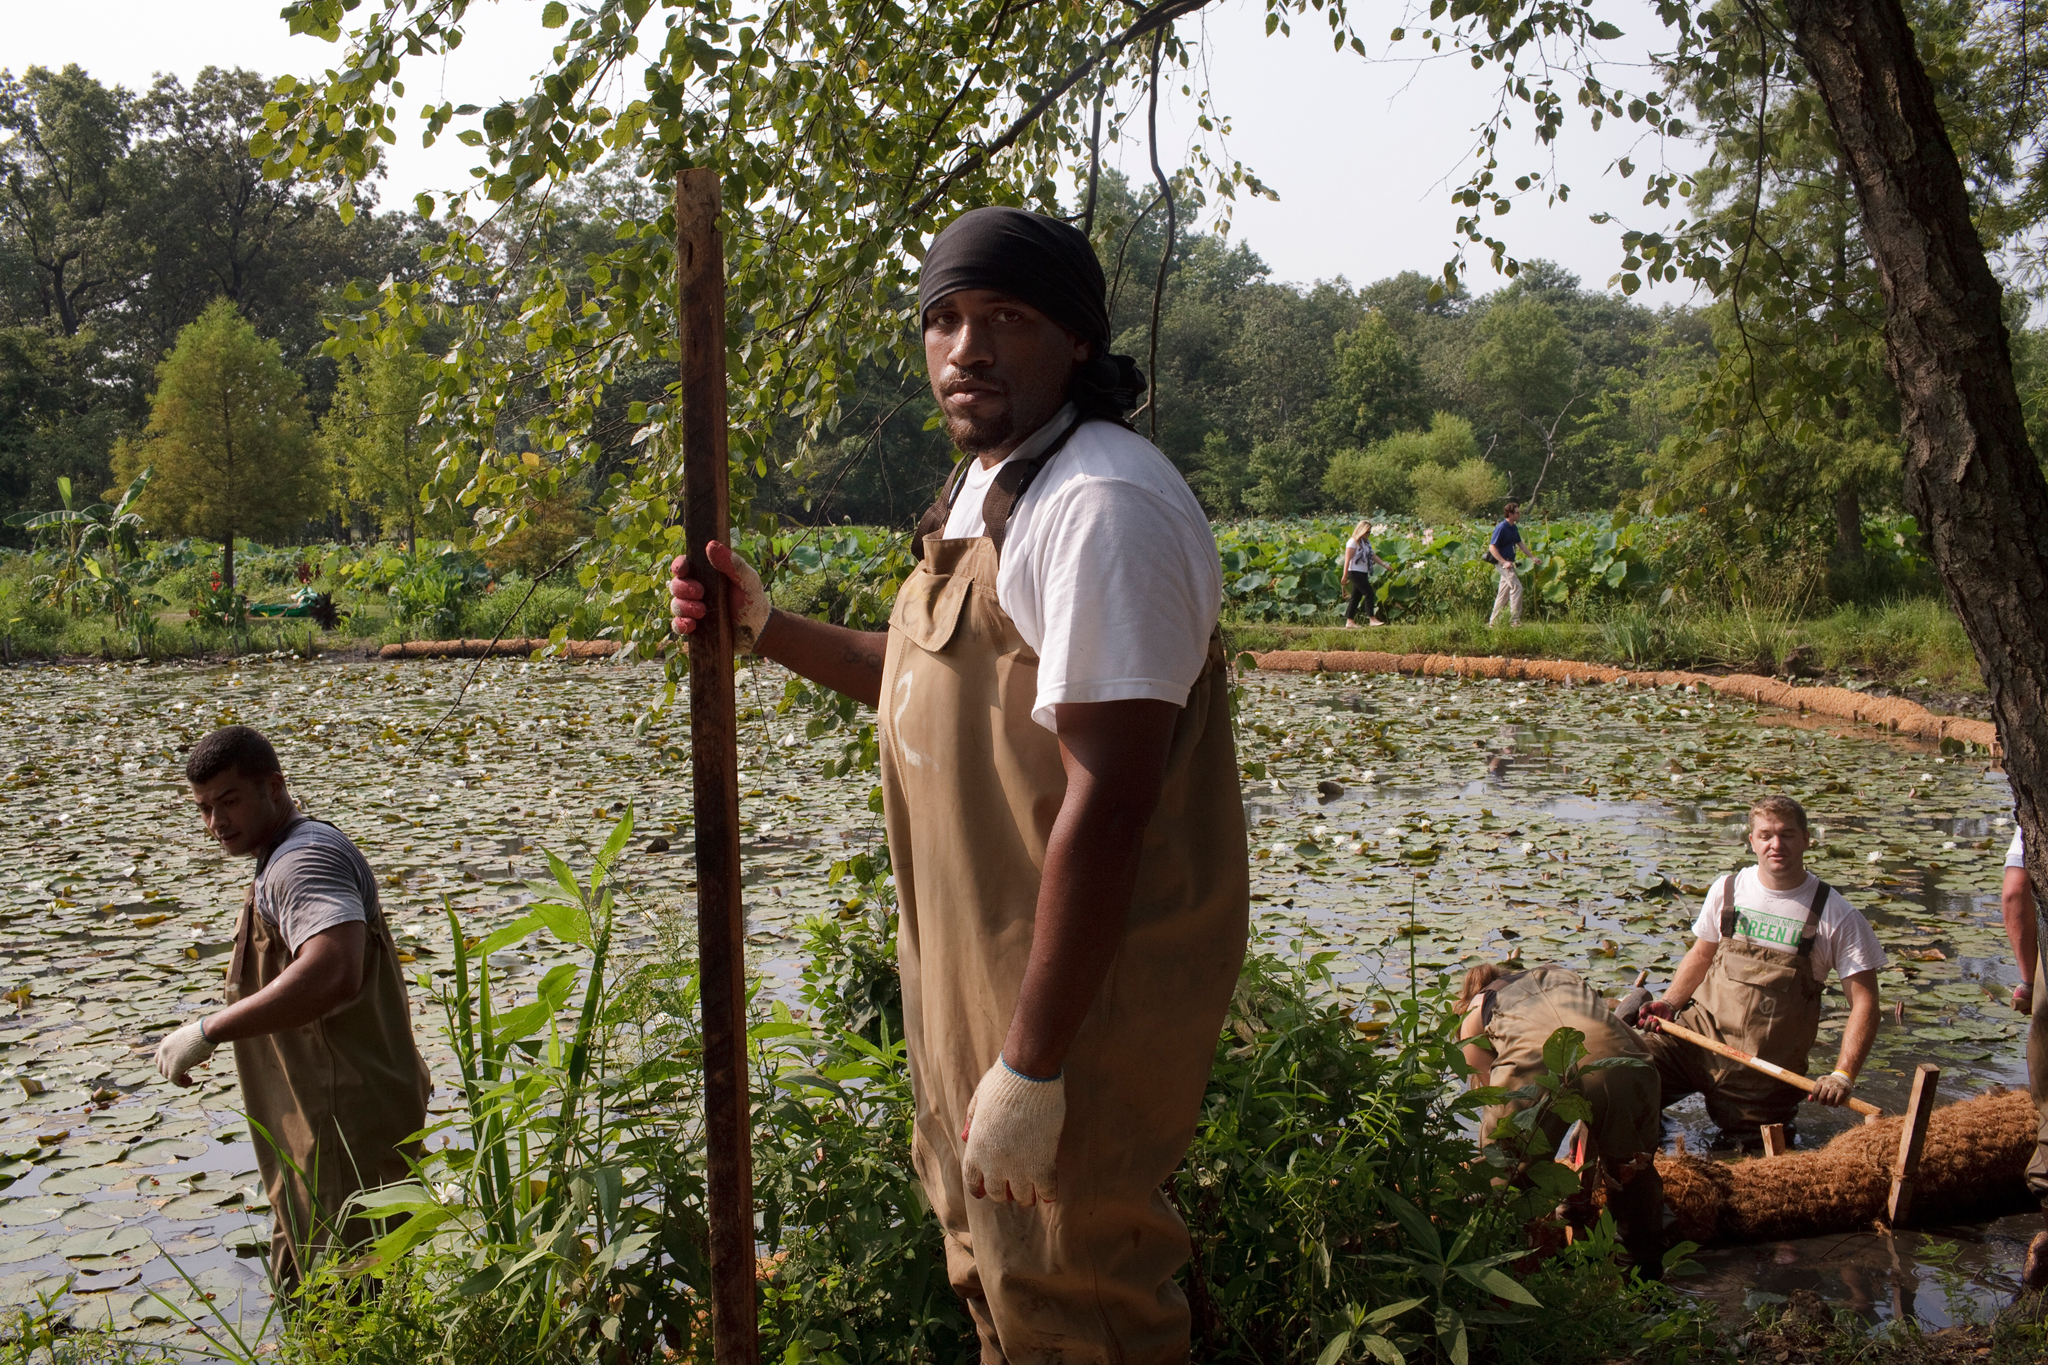 A community member helps clear invasive species from Kenilworth Aquatic Gardens on a workday sponsored by the Washington Nationals.